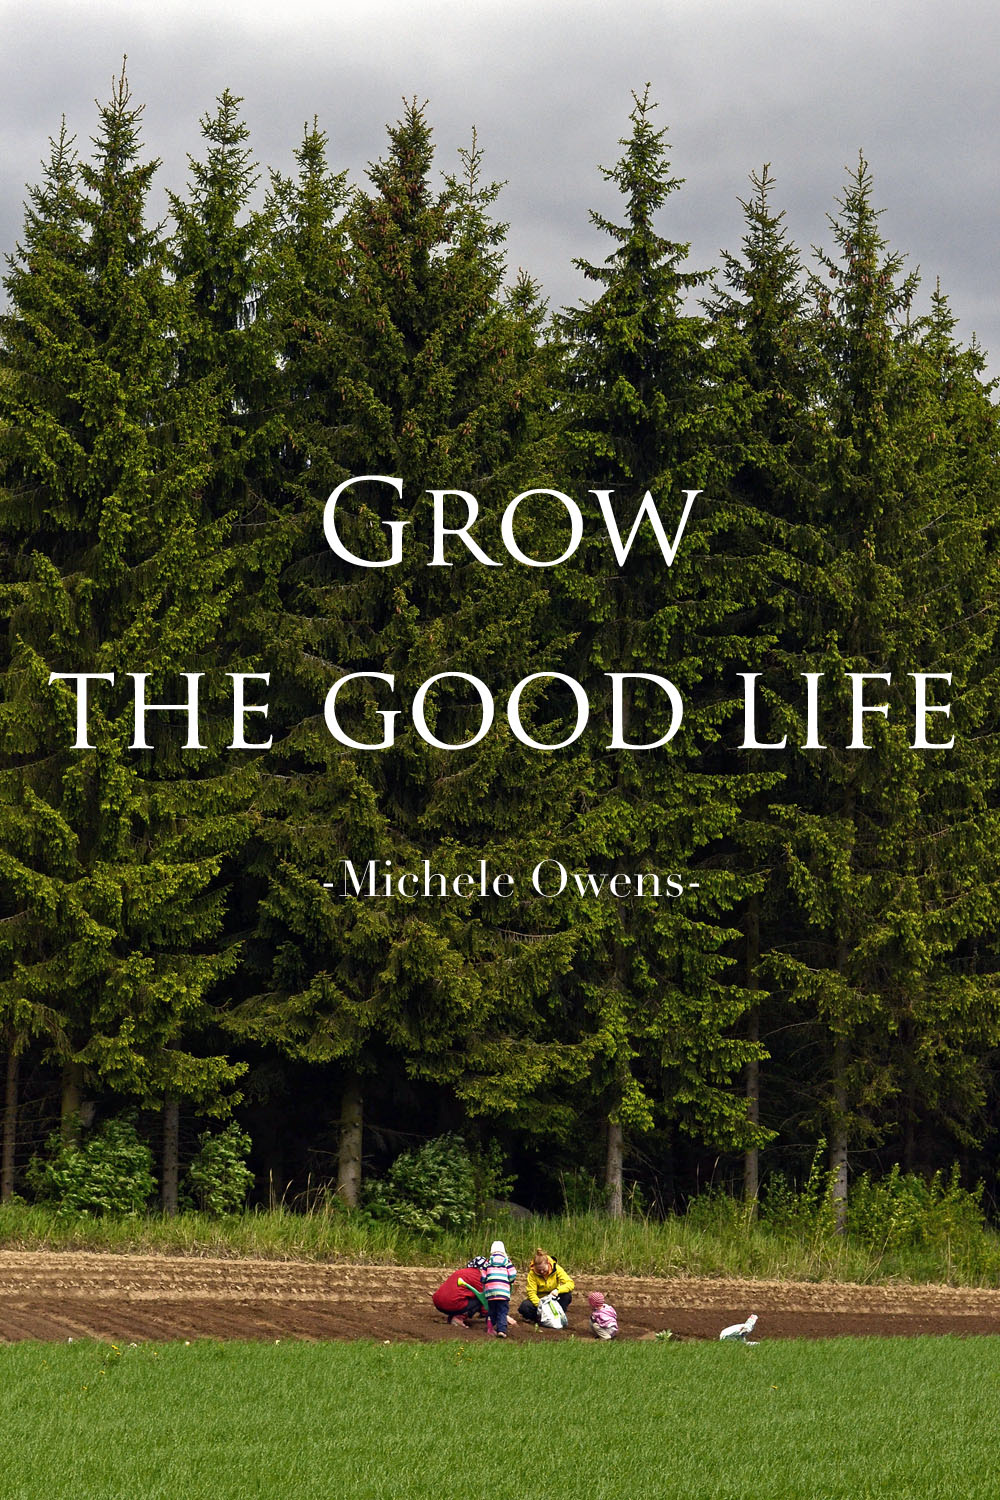 grow-the-good-life-quote